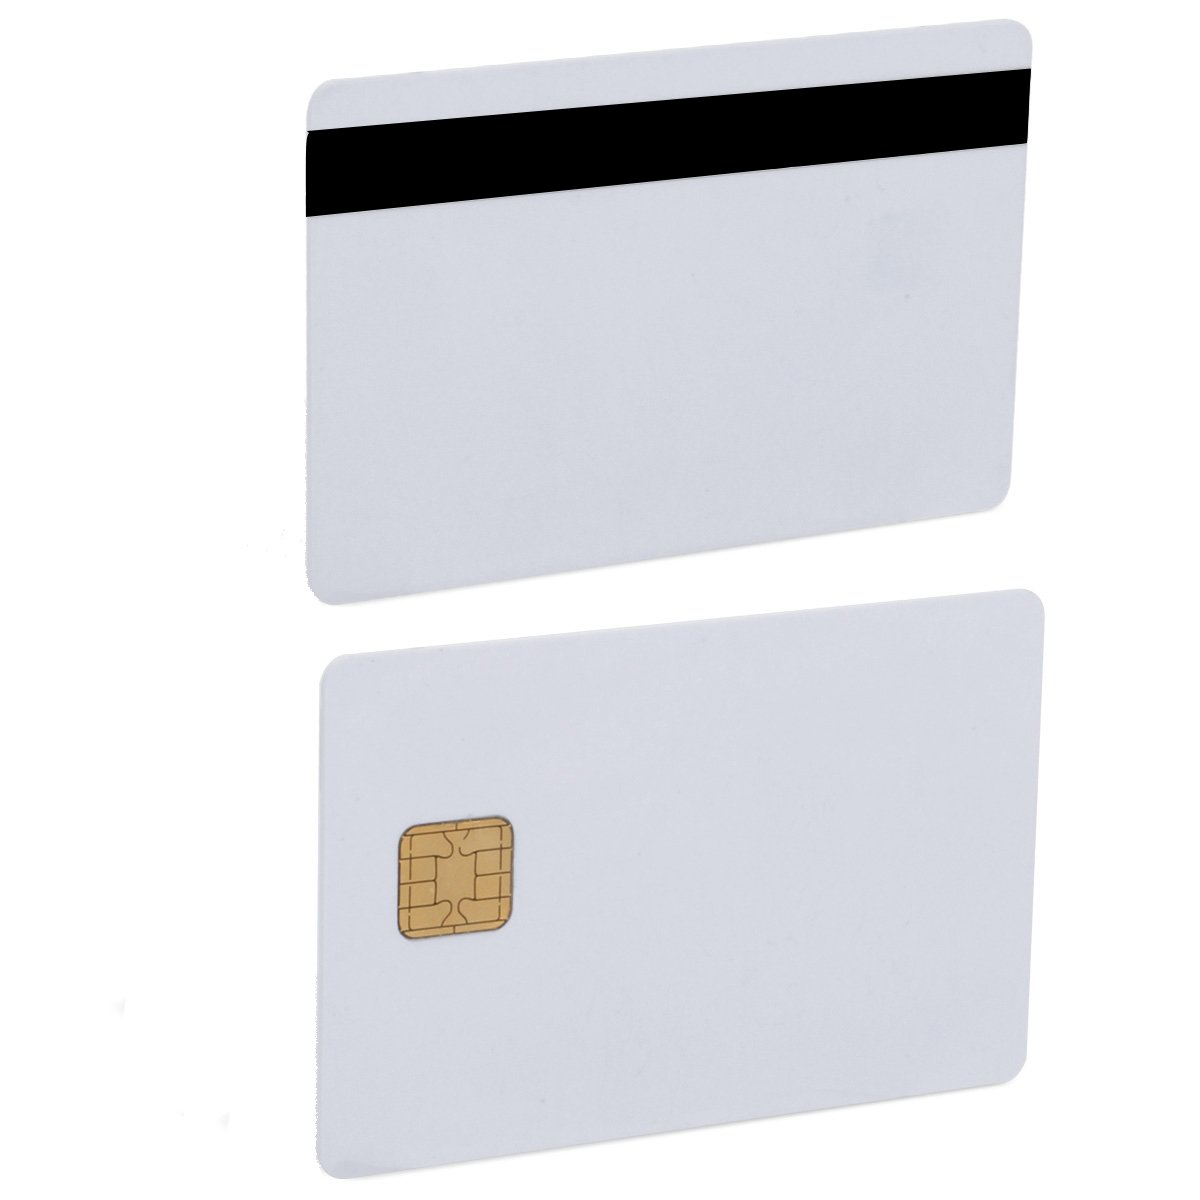 JAVA Chip Smart Card JCOP 40K J2A040 Java Card with 3 track 12.7 mm HICO/LOCO Magnetic Stripe- 5 Pack by smartelf